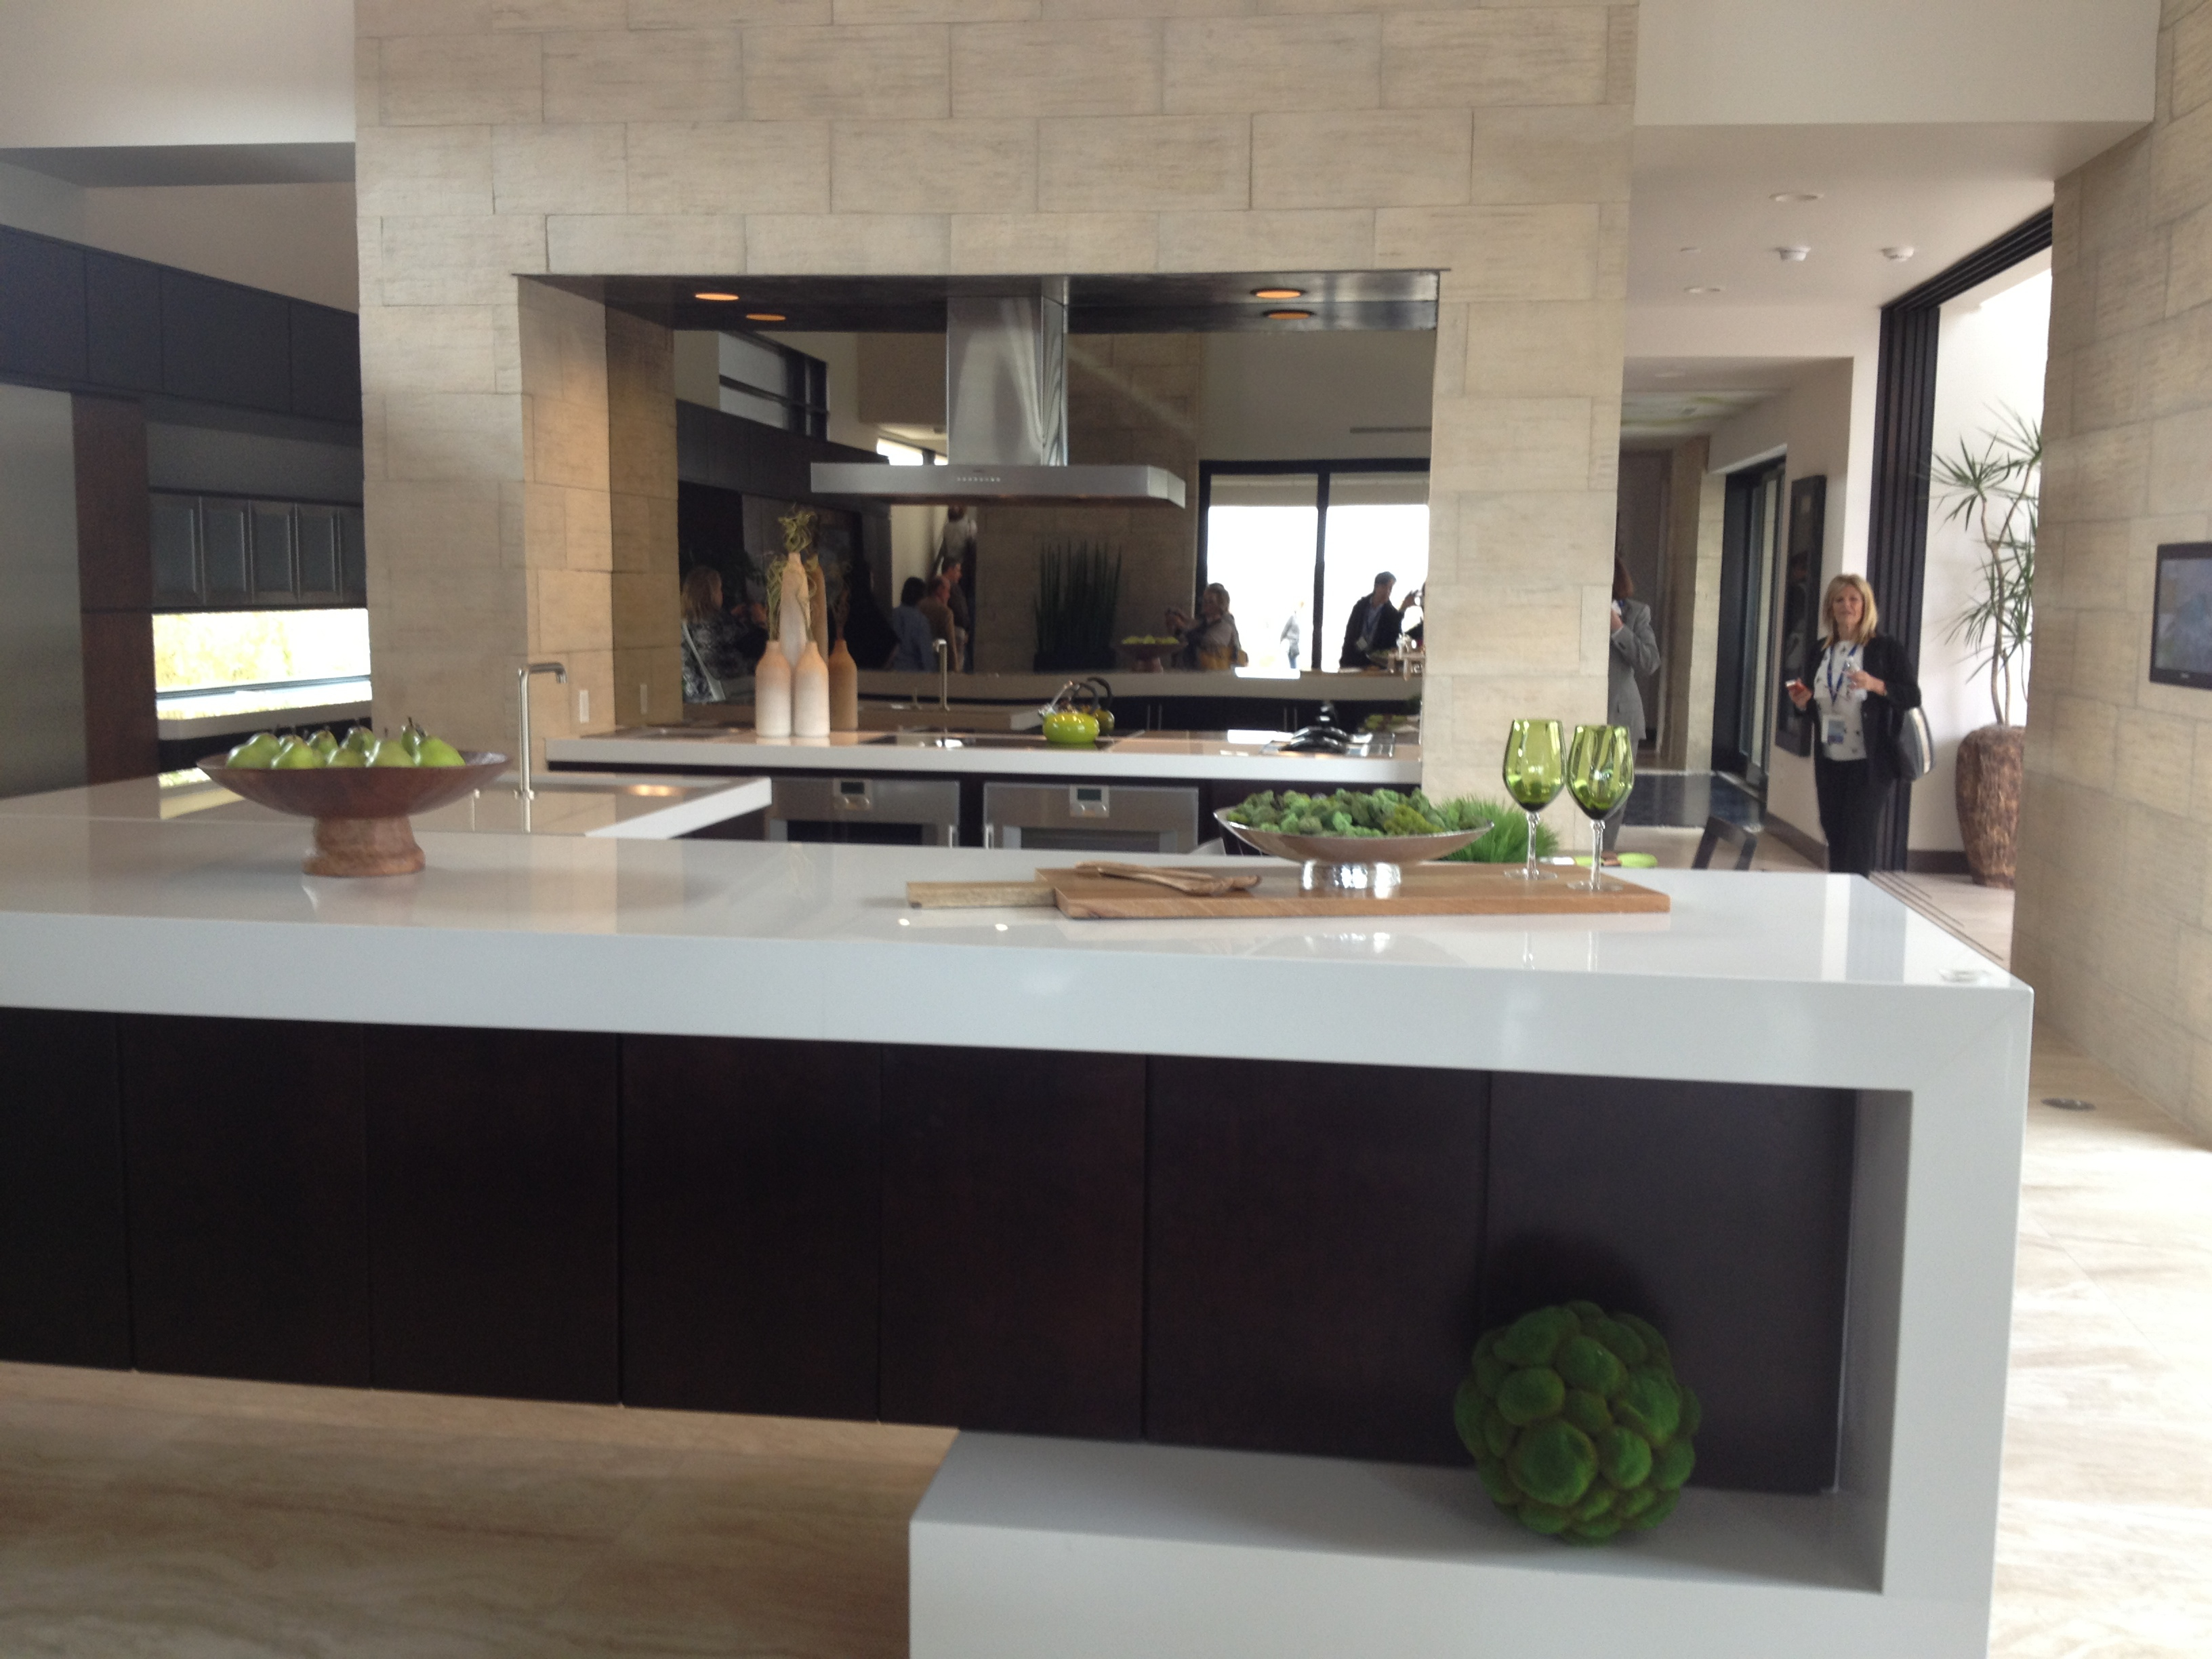 The Kitchen Island Curves And Wraps In 2013 Trade